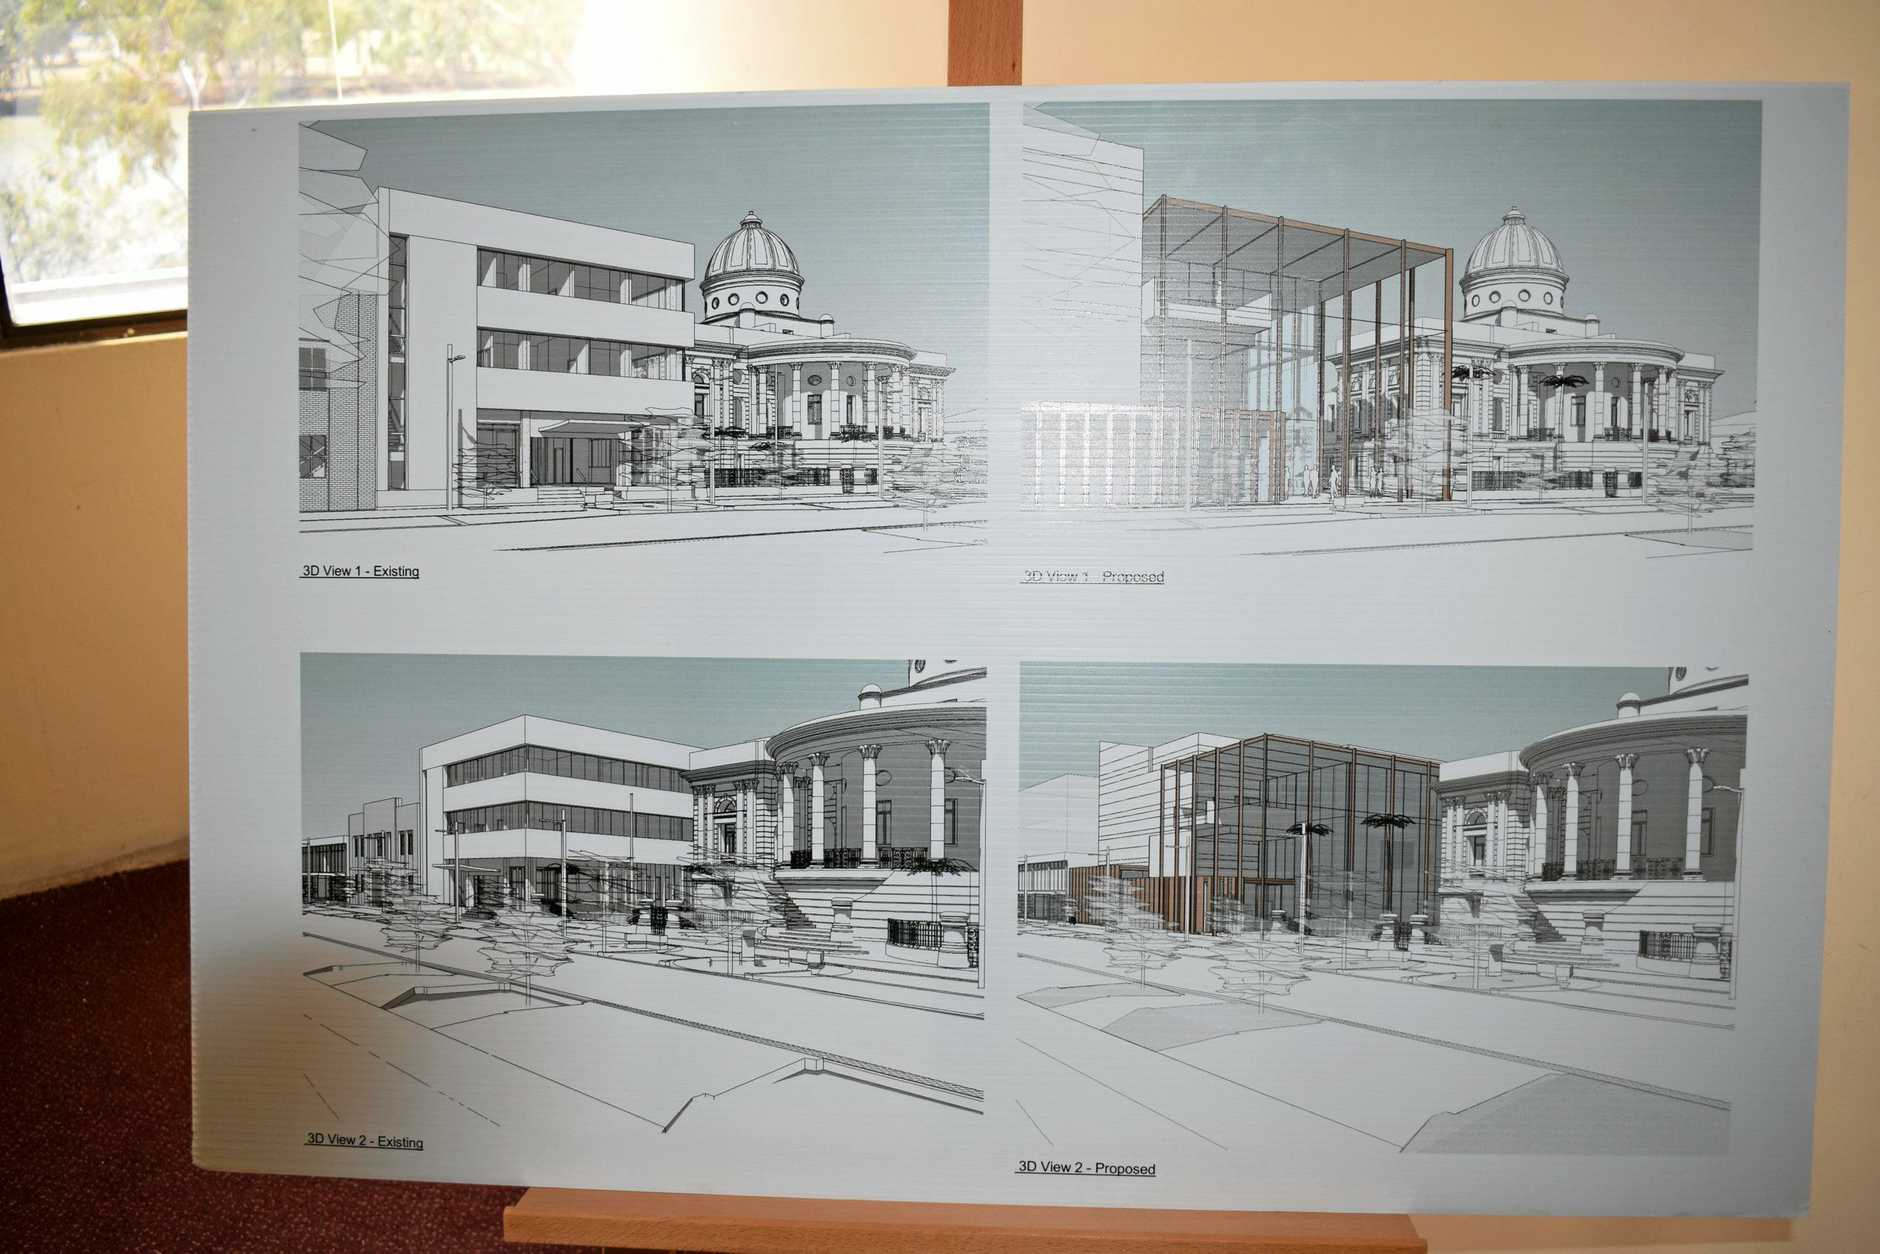 GALLERY PLANS: These concept plans for the new Art Gallery were set up at the demolition site.